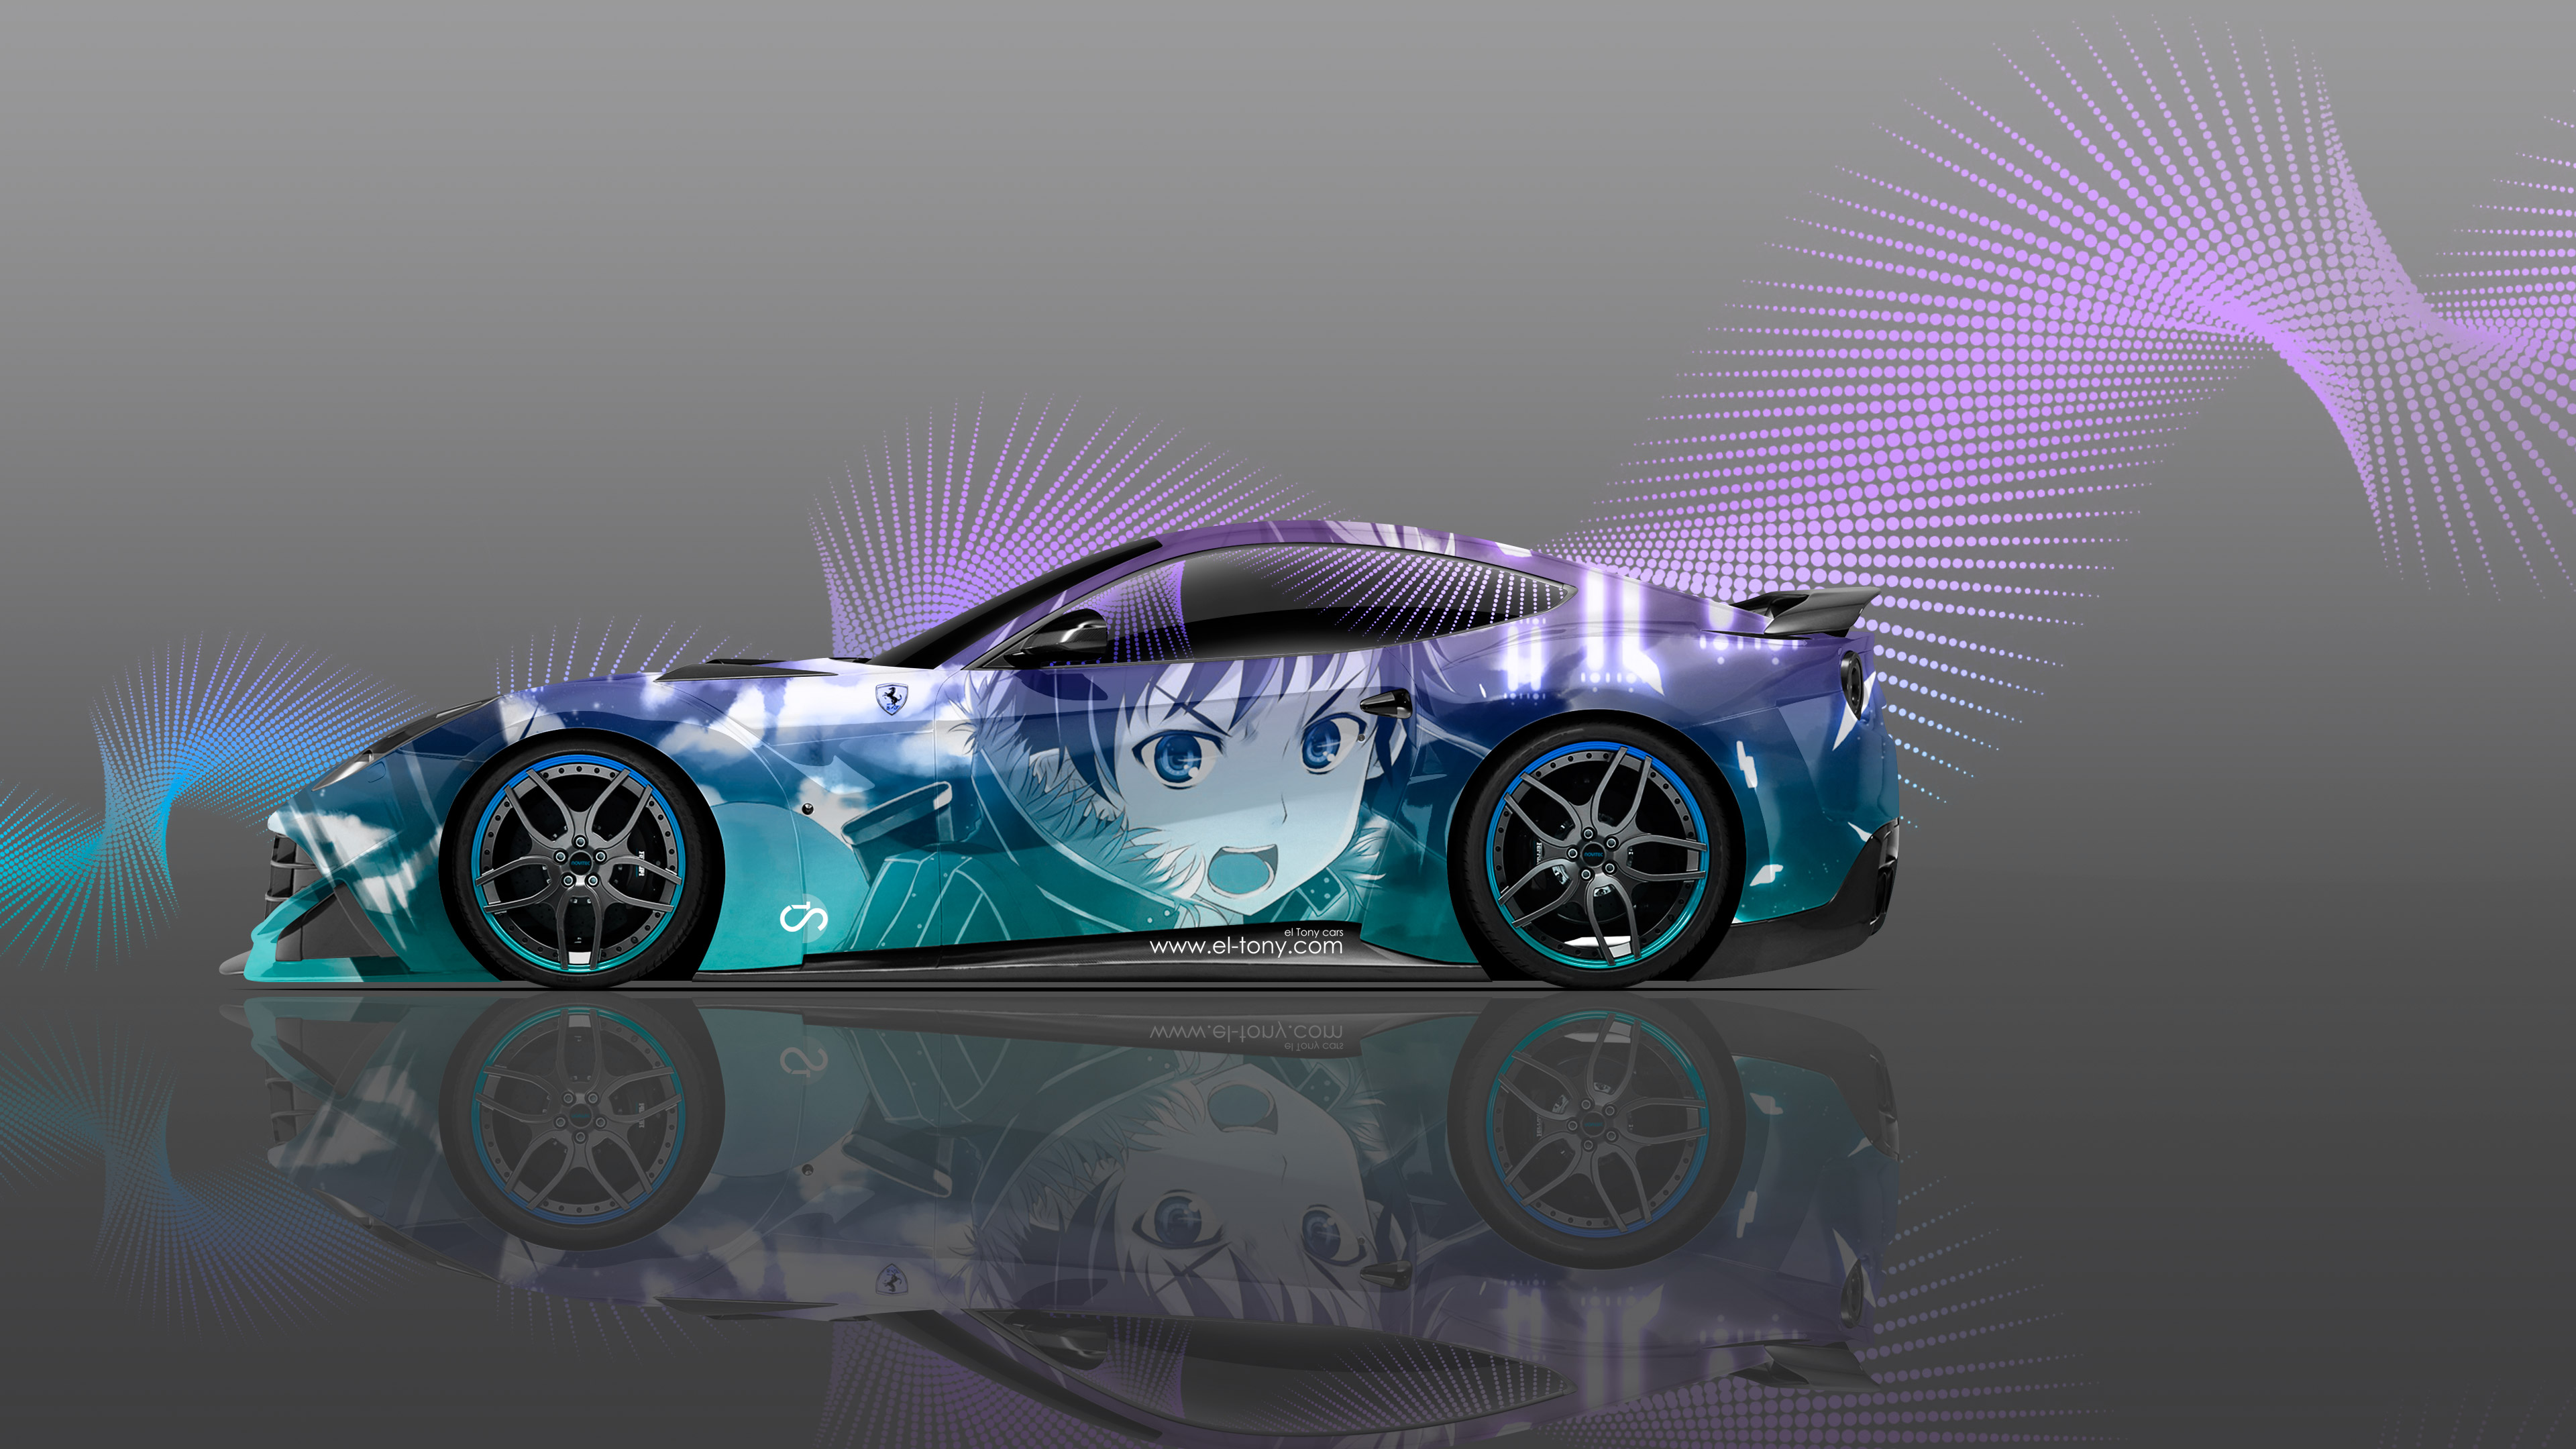 Ferrari-F12-Berlinetta-Side-Anime-Boy-Aerography-Abstract-Car-2015-Azure-Violet-Effects-4K-Wallpapers-design-by-Tony-Kokhan-www.el-tony.com-image